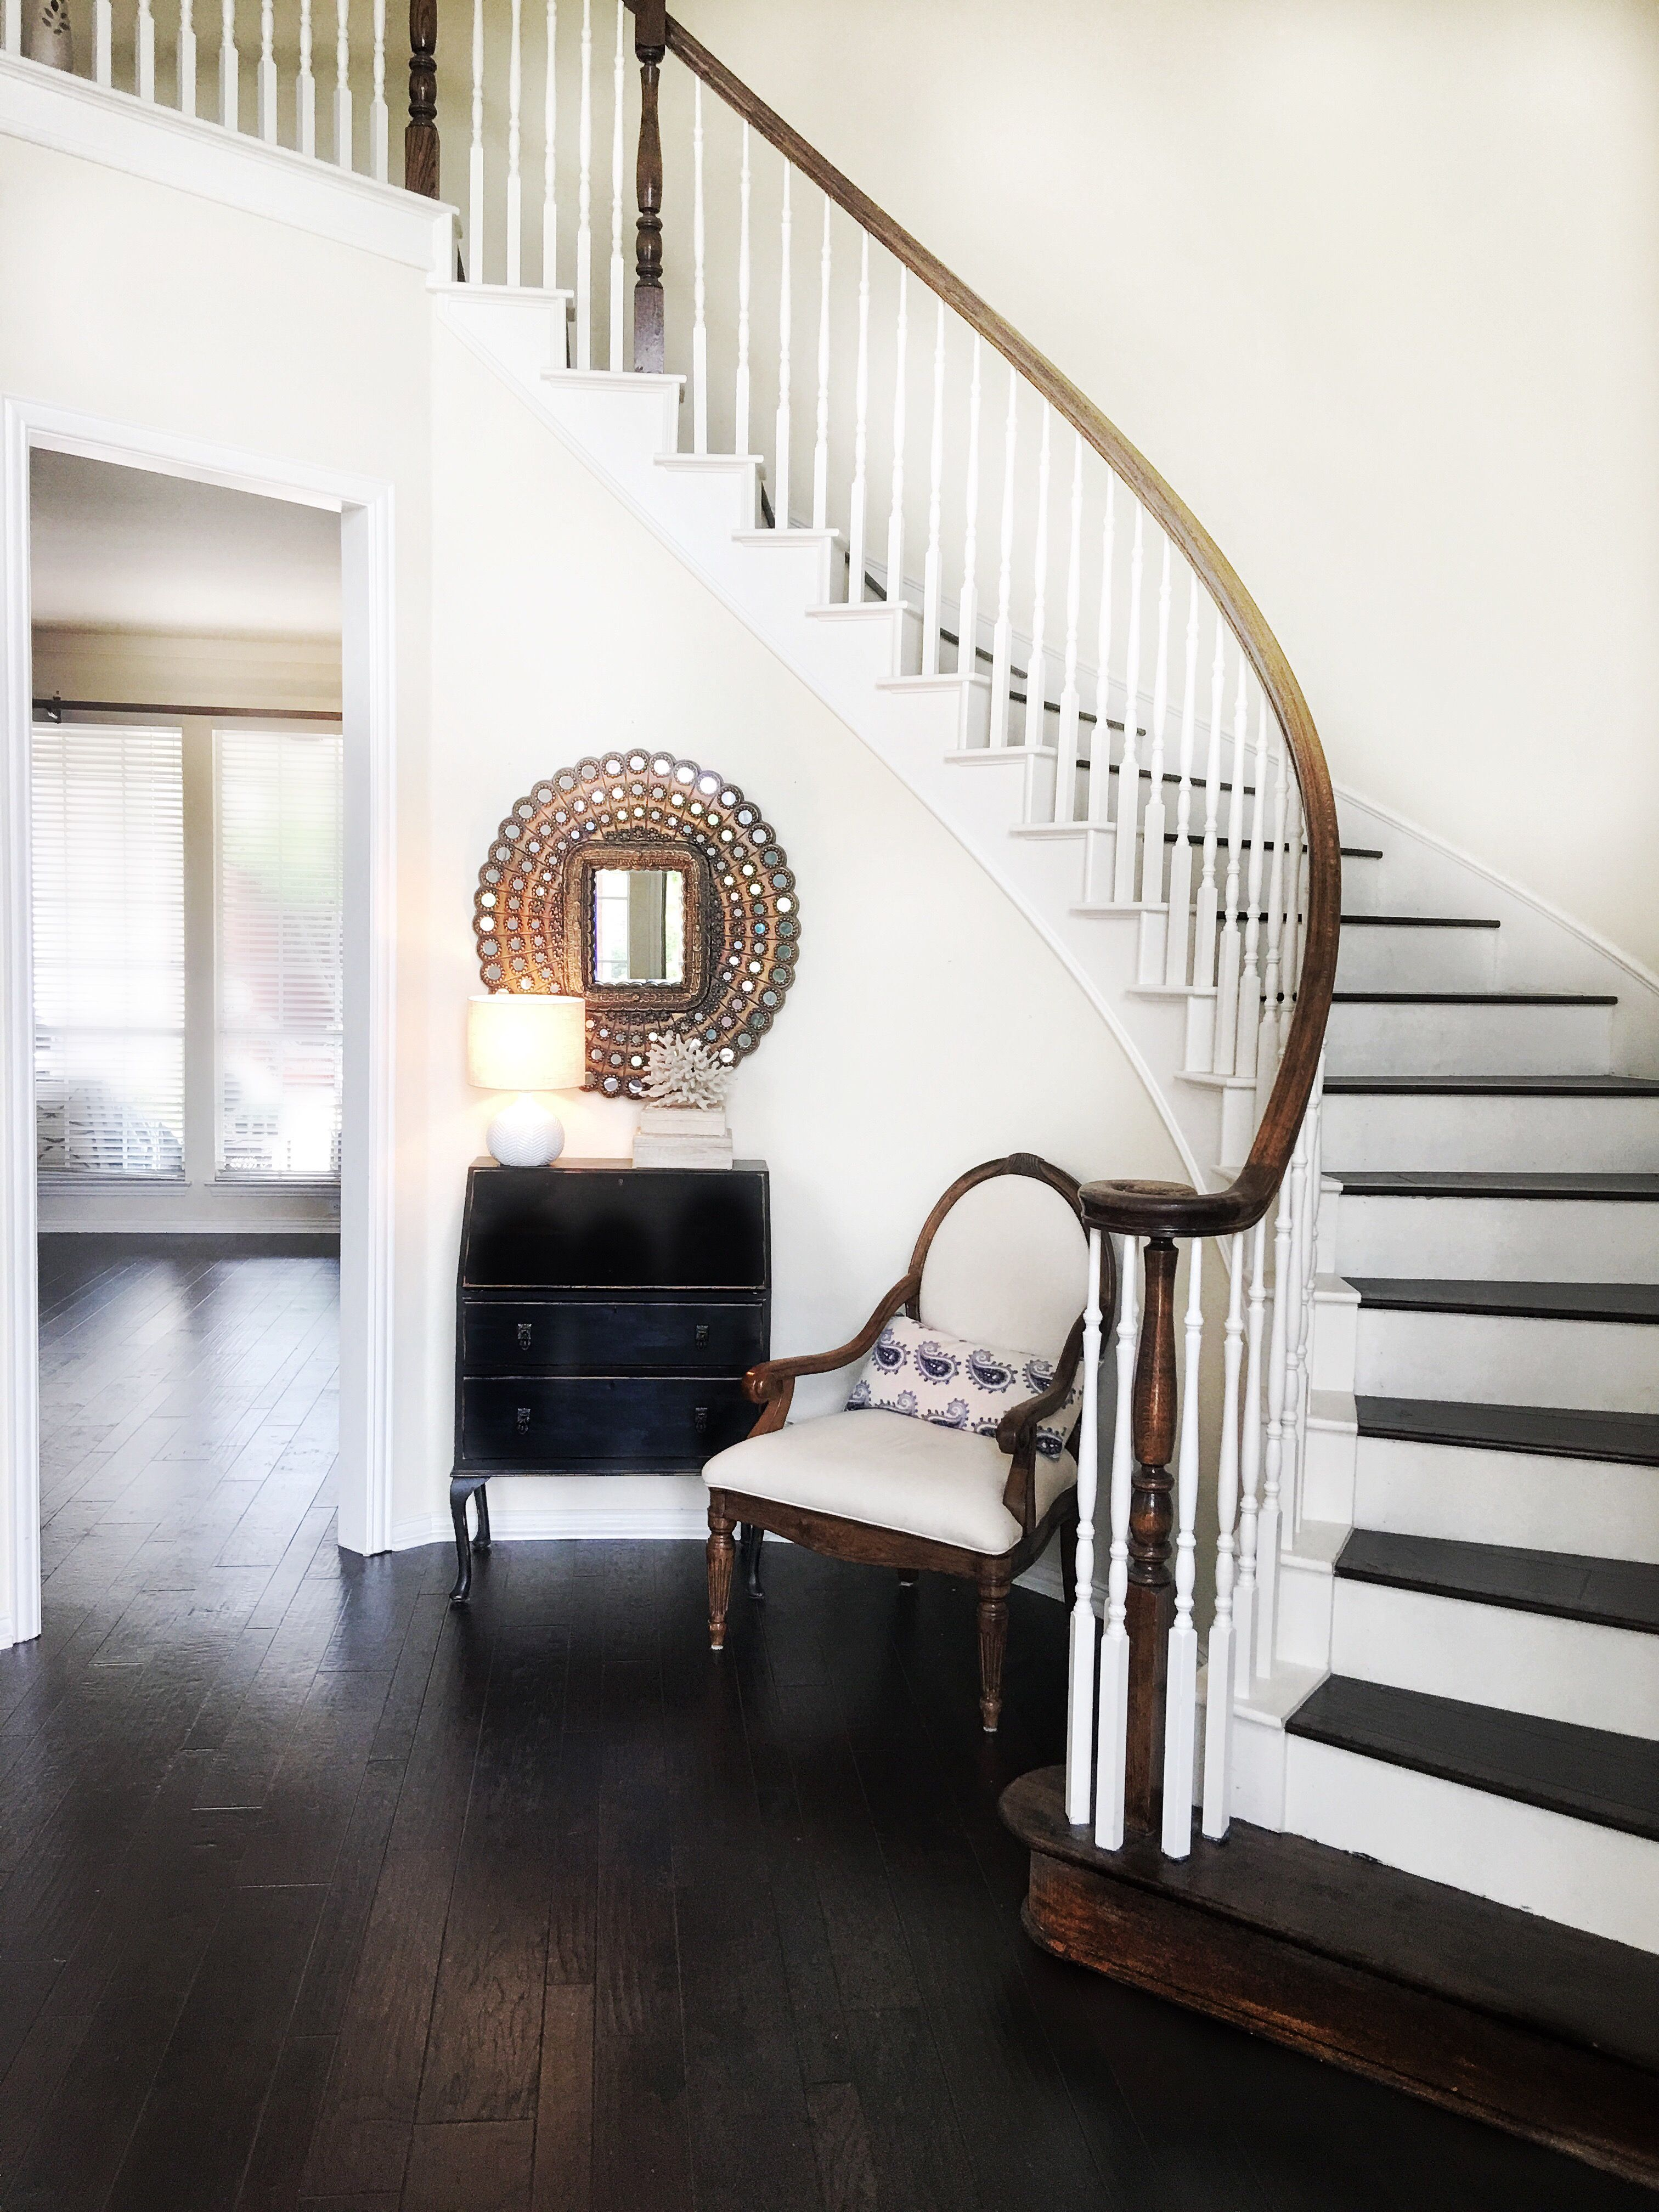 birthday cards hook artistic entryway and entrance loft full brochure hallway amazing contemporary decorating decor dreamy master home hall easy ideas decorations decoration saving country mirror design modern ch foyer size pinterest space art pop pumpke for of bedroom